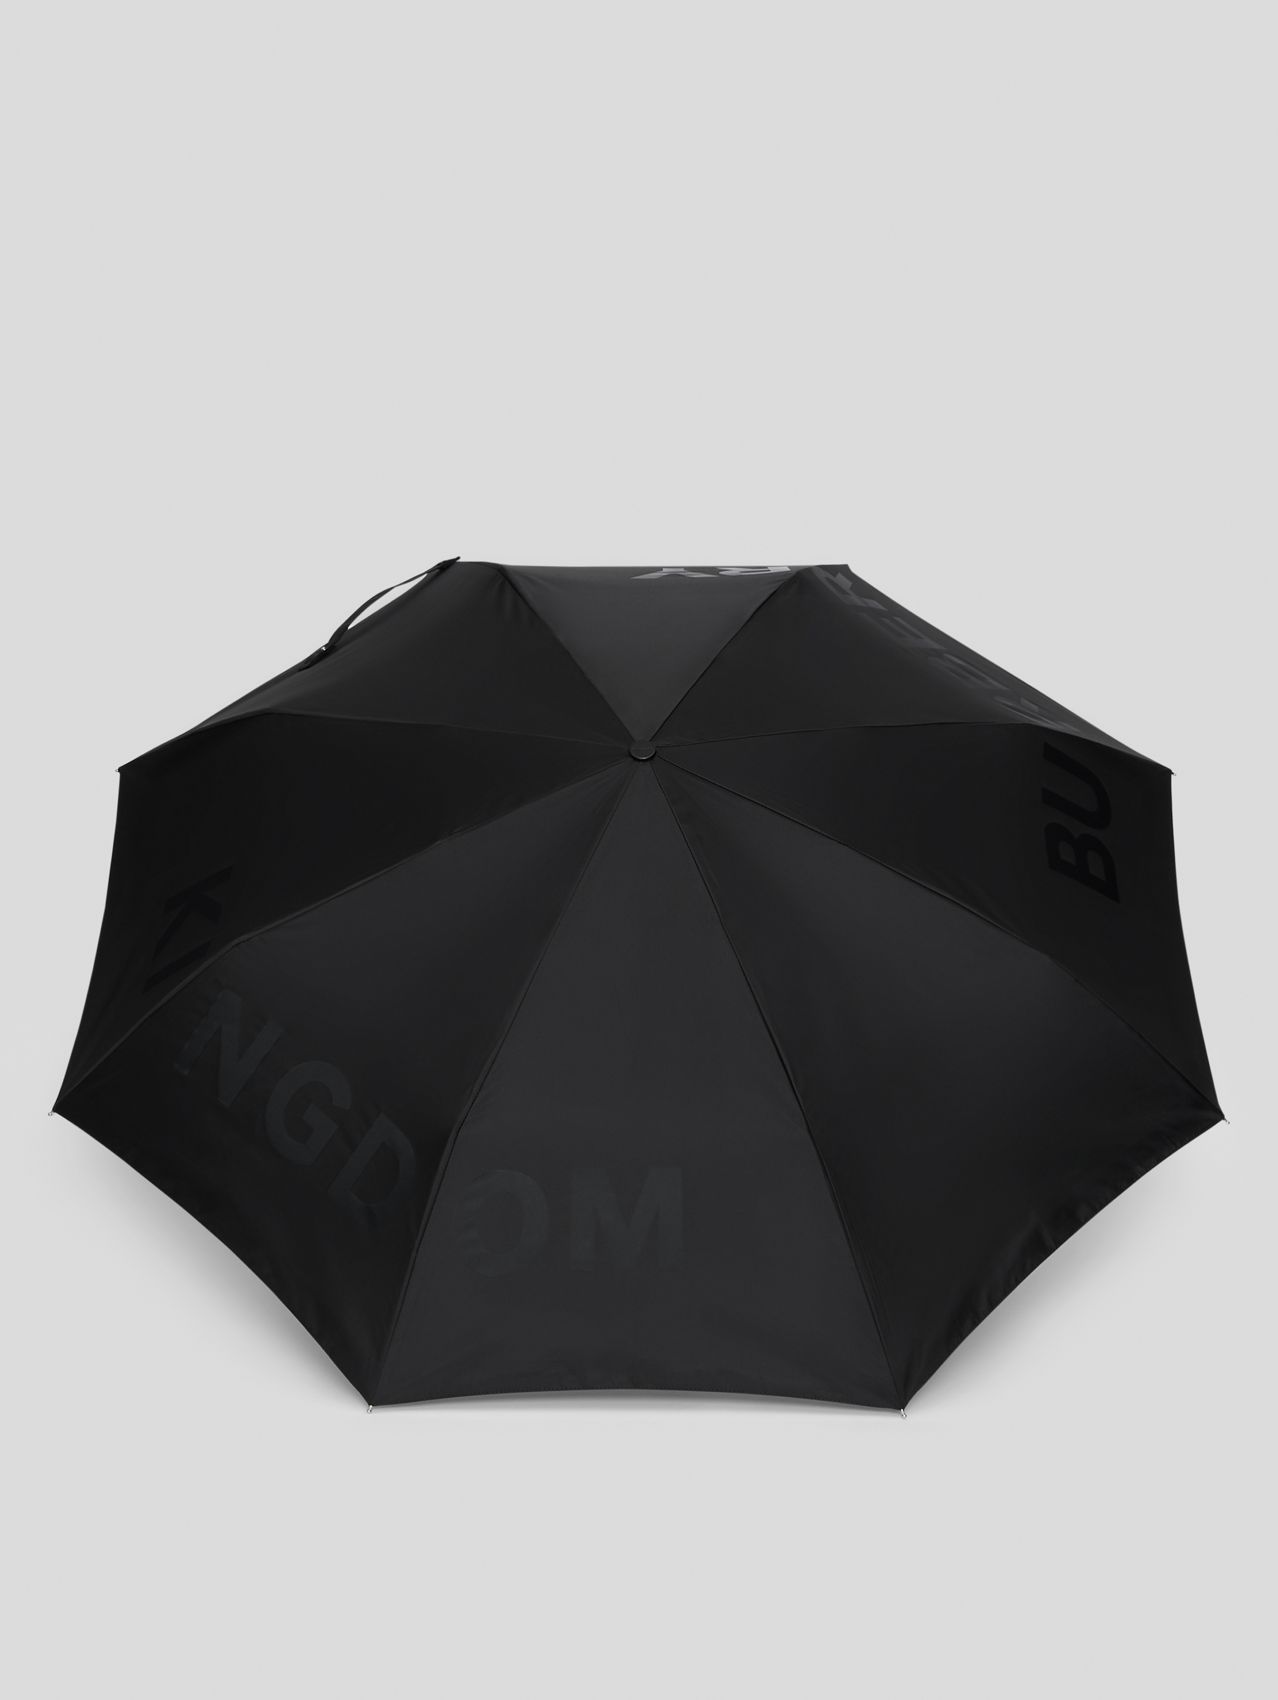 Kingdom Print Folding Umbrella (Black)